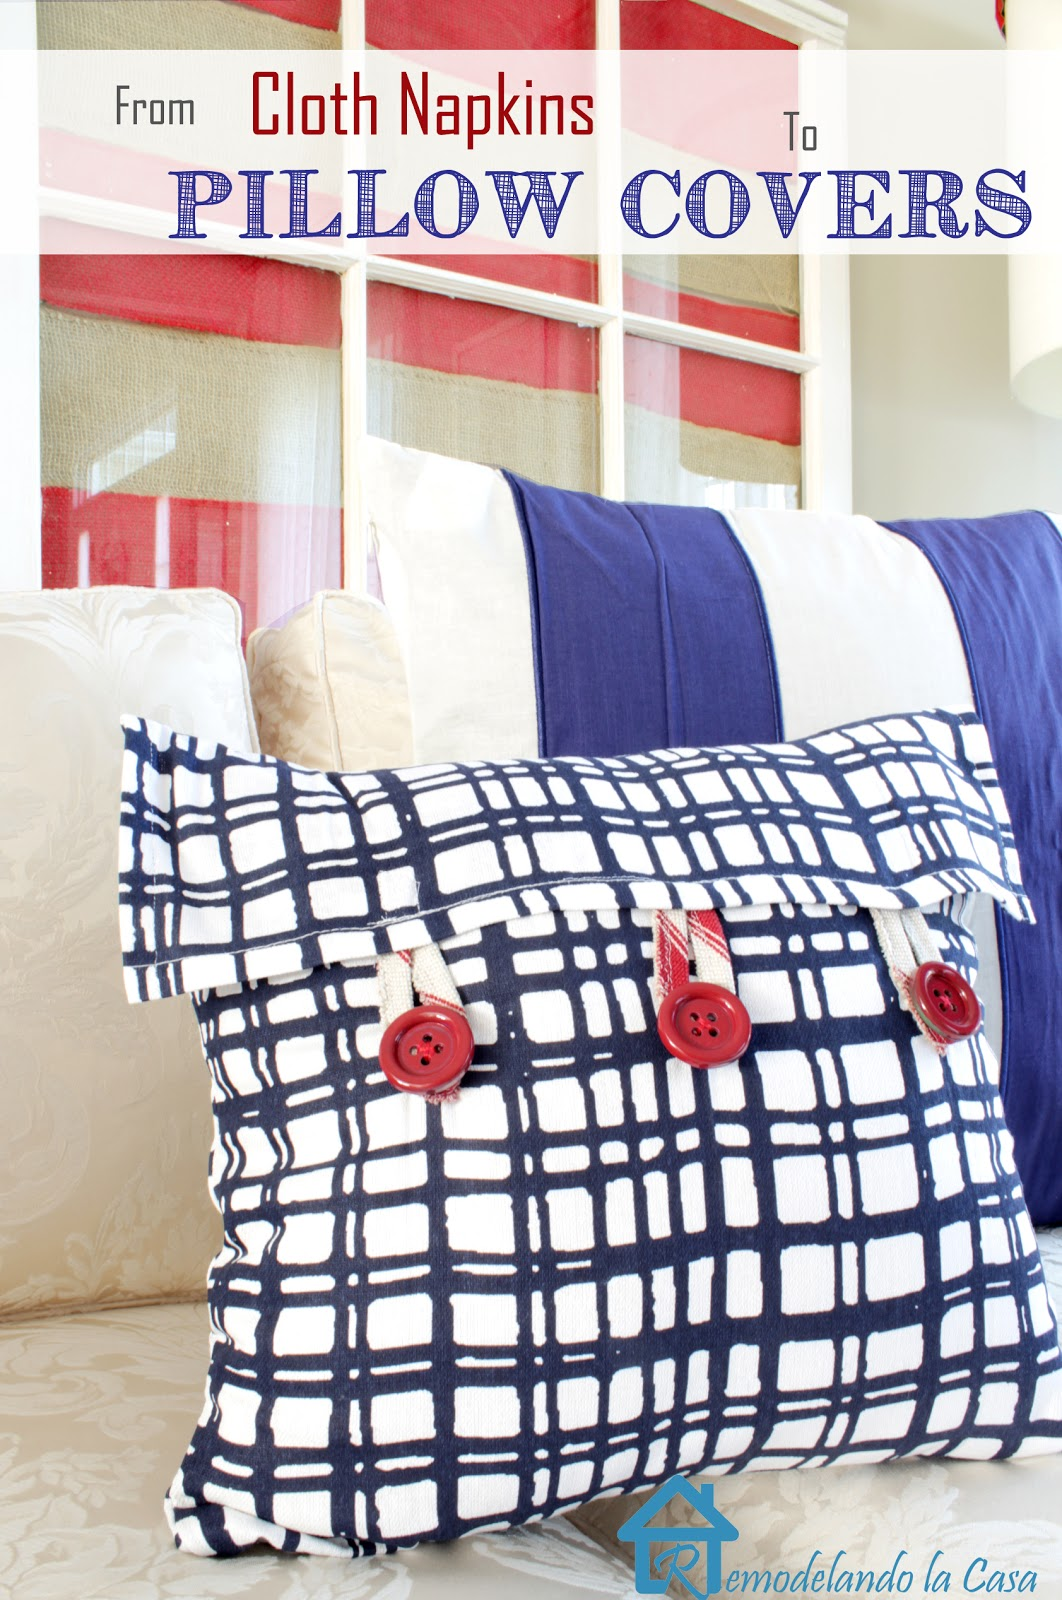 cloth napkins turned pillow covers to decorate for fourth of July and red white and blue